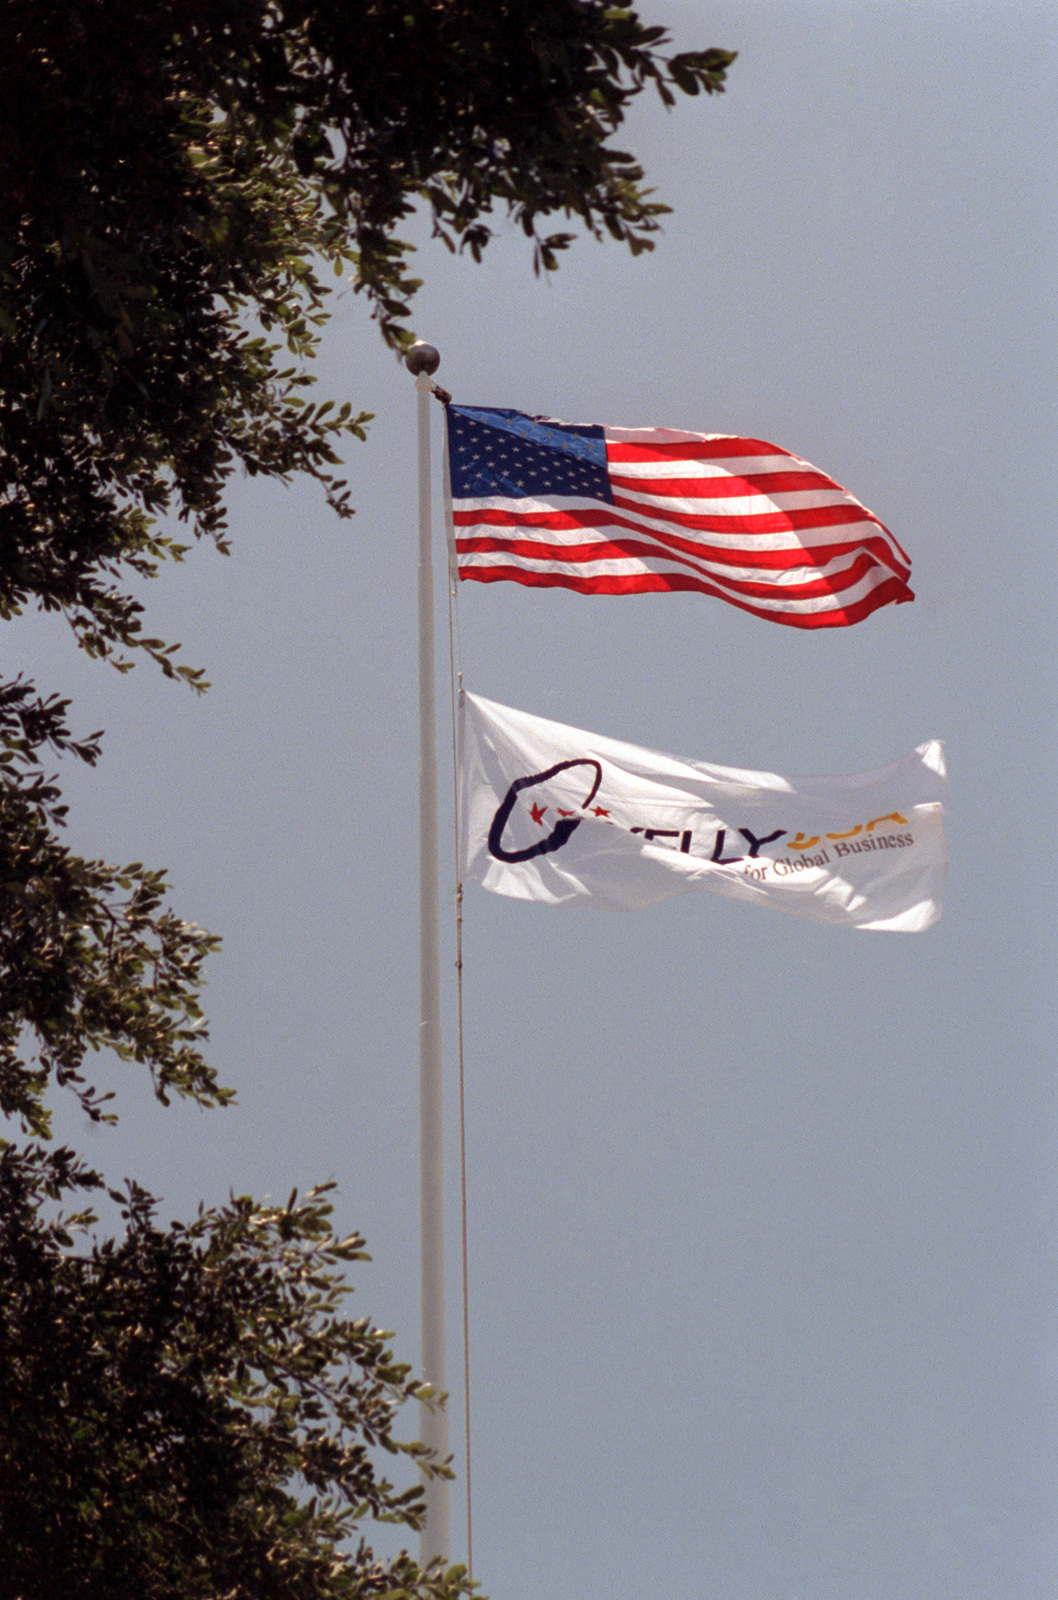 The San Antonio Air Logistics Center (Kelly AFB) flag no longer flies. In its place, the new KellyUSA Business Park flag flies. Although the closing ceremony is in history books, government officials still actually own Kelly property and will until federal and state environmental regulators okay remedies for the installation's 30 sites that need environmental clean-up, according to federal law provisions